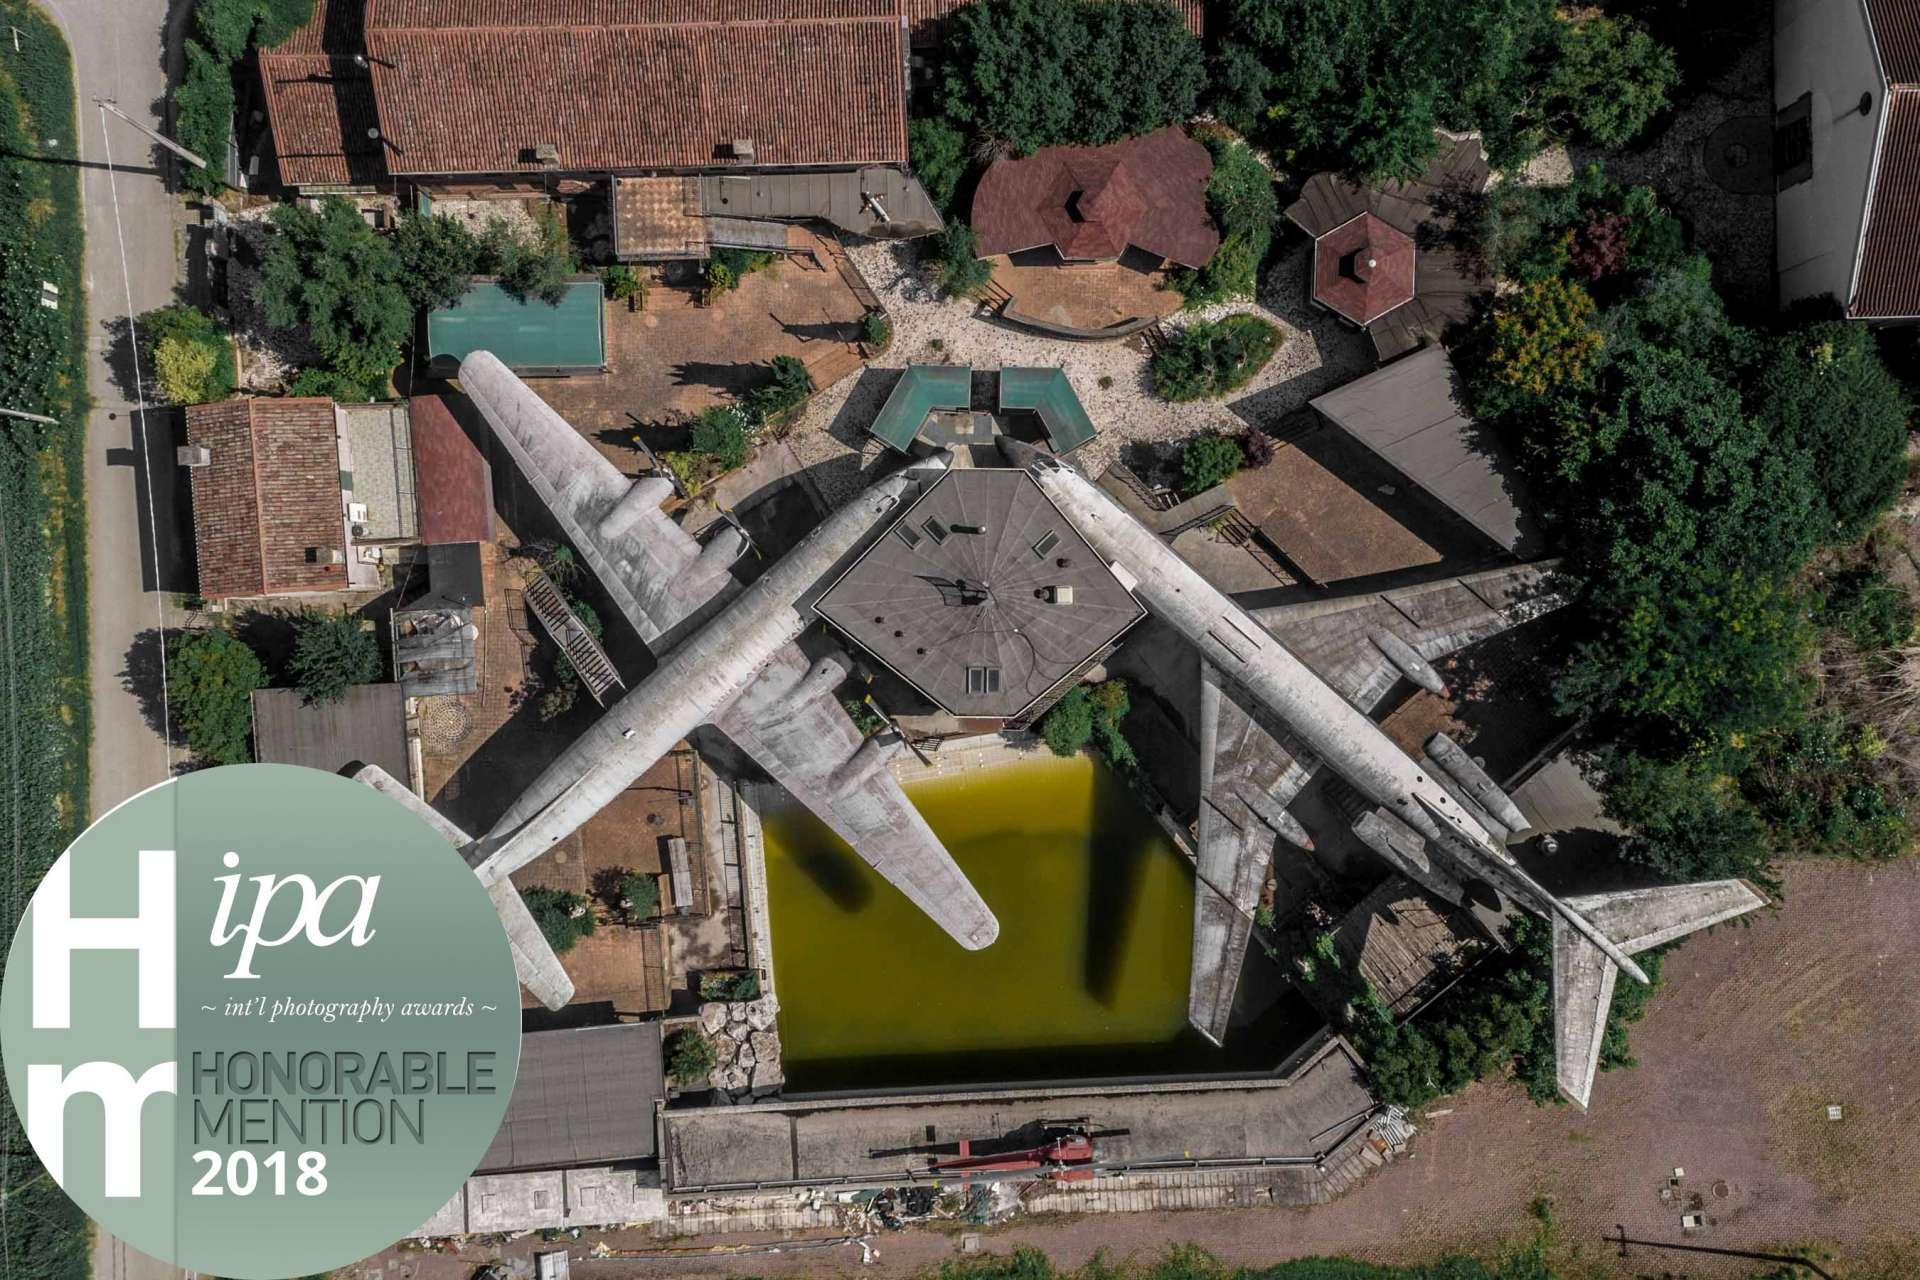 IPA 2018 International Photography Awards 2018 Enrico Pescantini Honorable Mention Lost Planes of Michelangelo